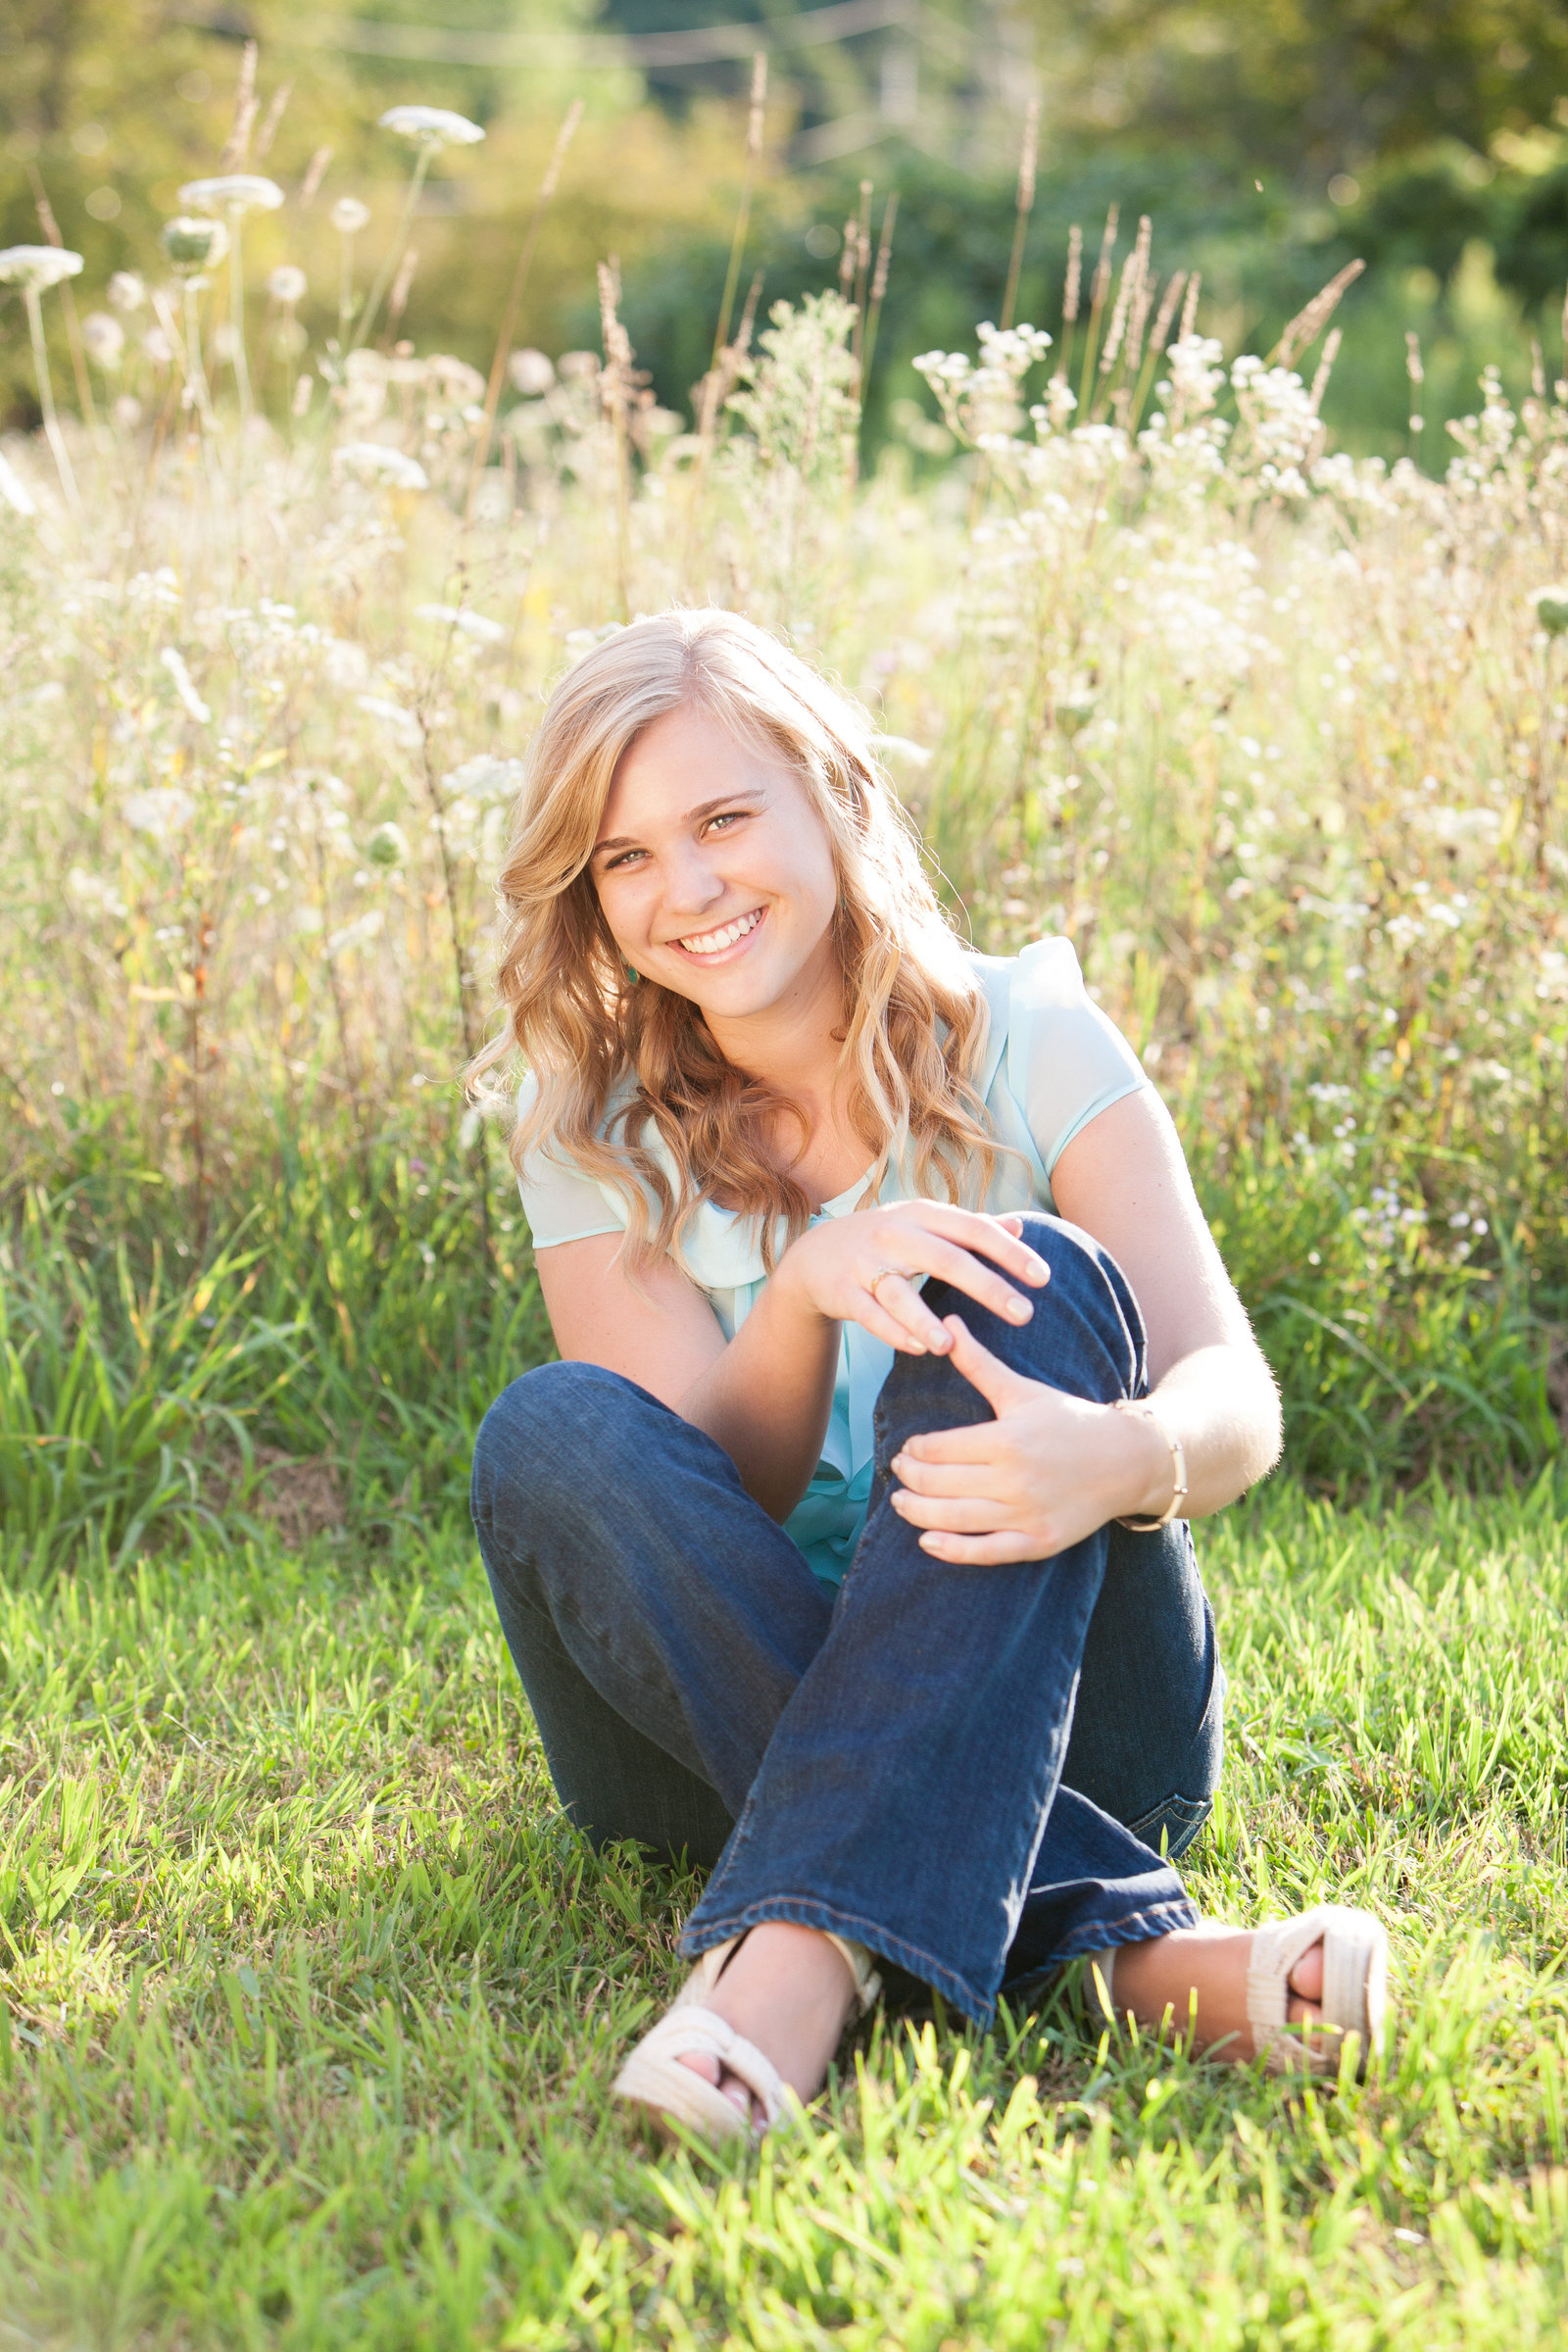 outdoor casual senior portrait photography pictures Poughkeepsie by professional photographer in the Hudson Valley